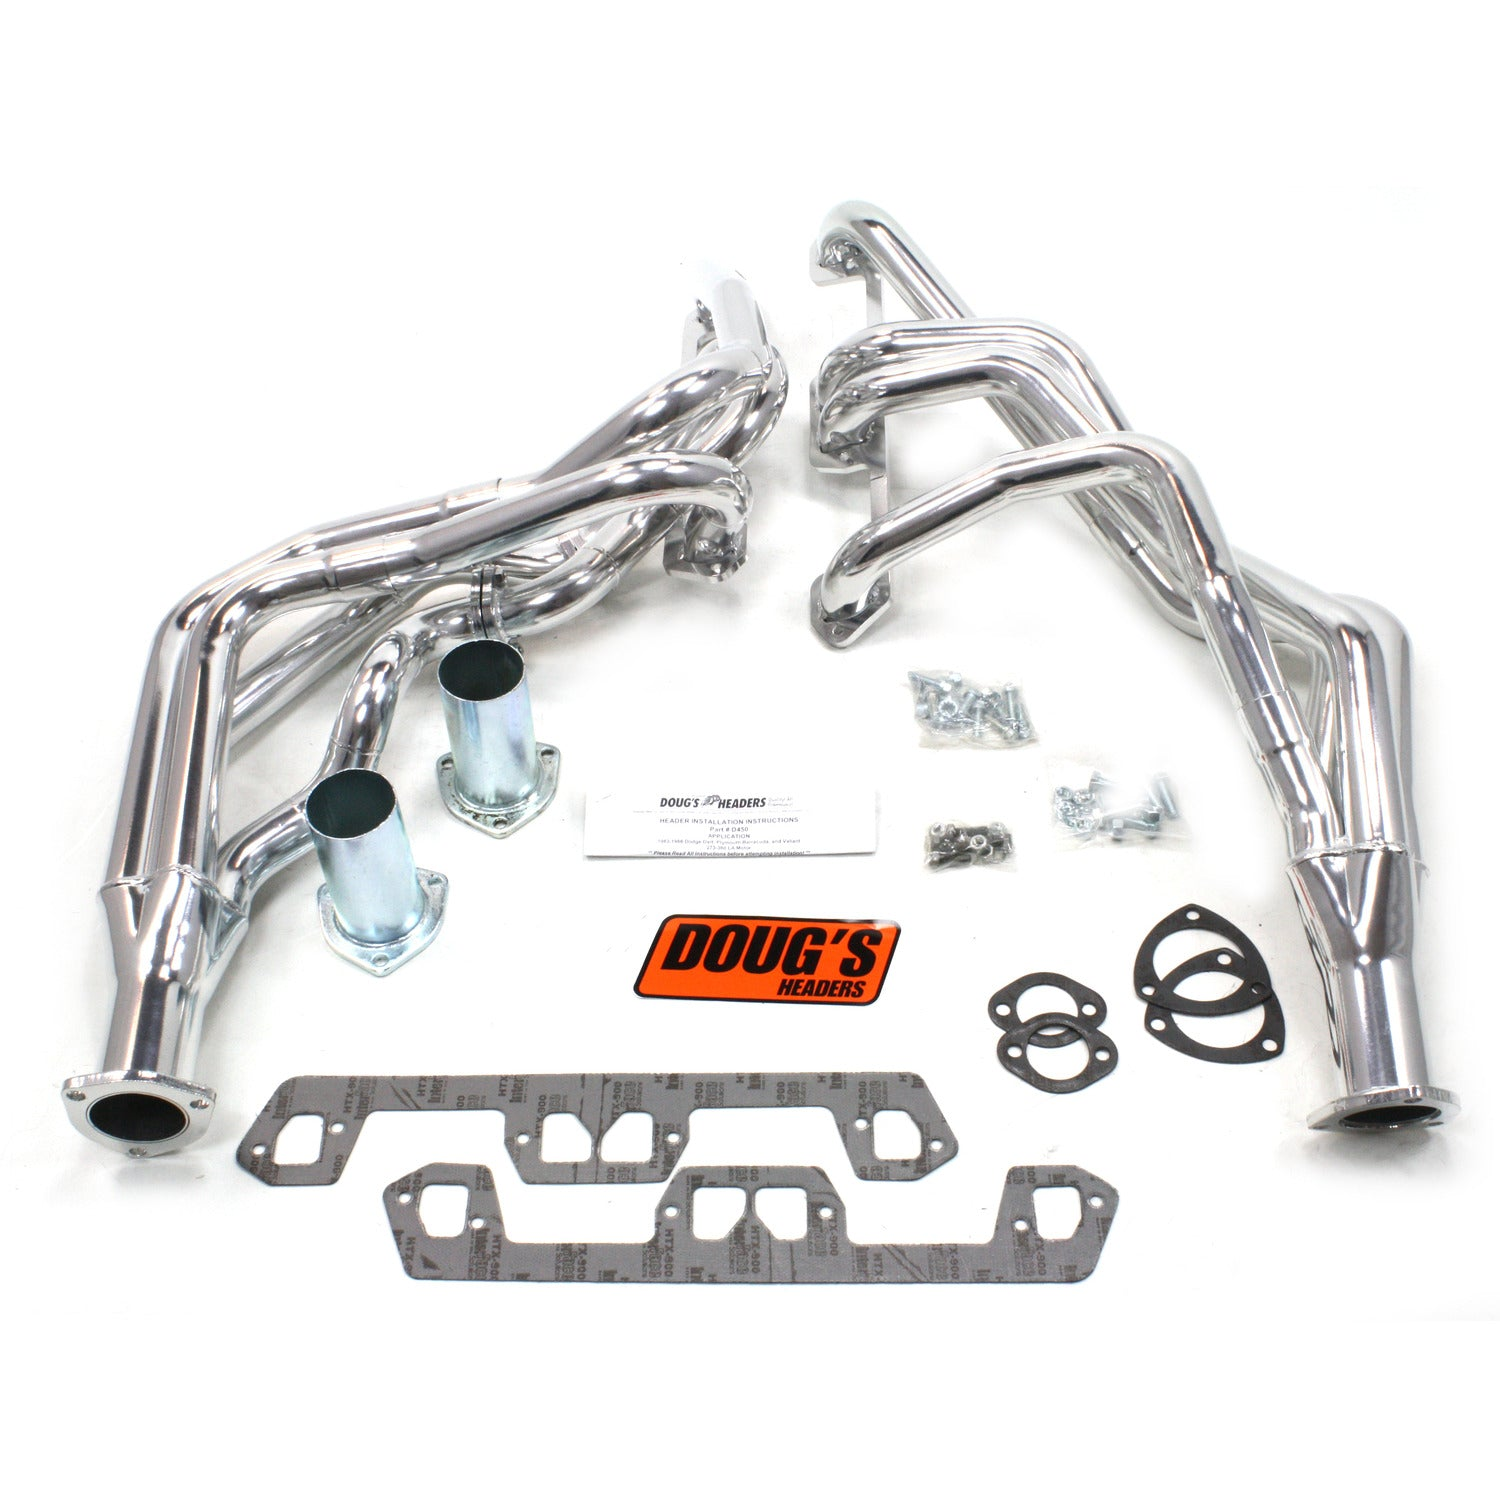 "Doug's Headers D450 1 5/8"" 4-Tube Full Length Header Mopar Dart Small Block Mopar 63-66 Metallic Ceramic Coating"